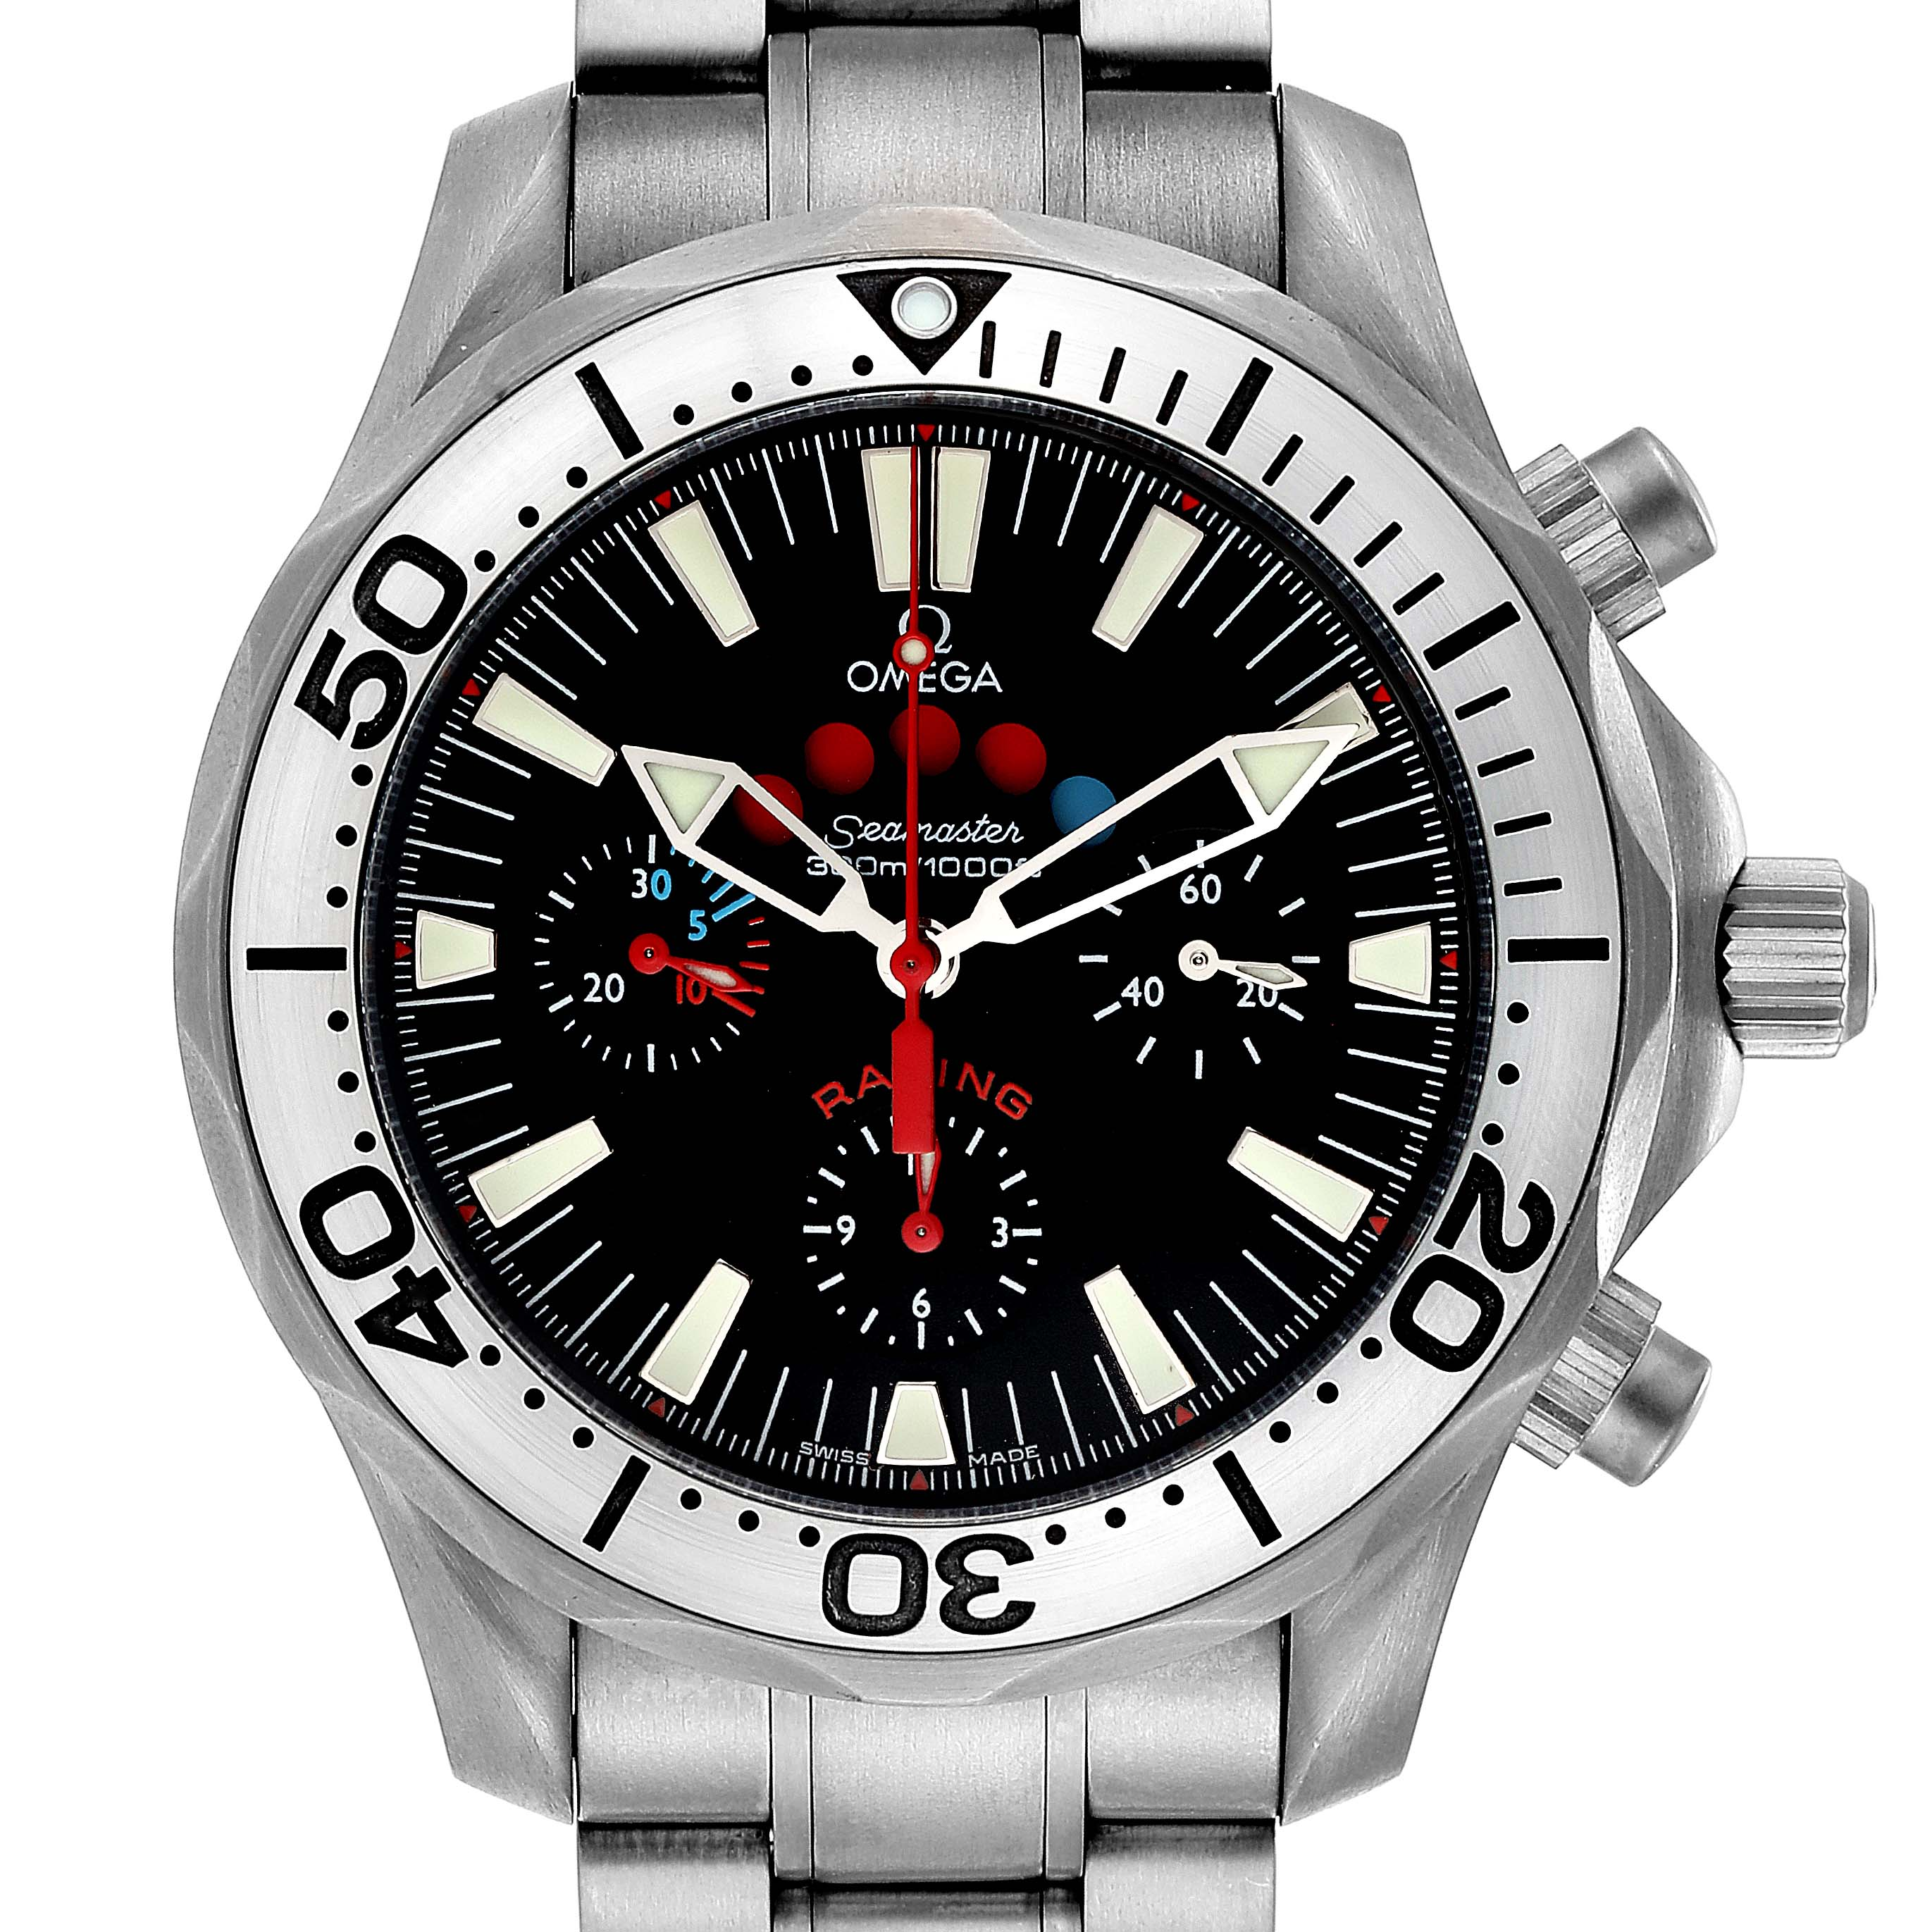 Omega Seamaster Regatta Racing Titanium Mens Watch 2269.52.00 Card